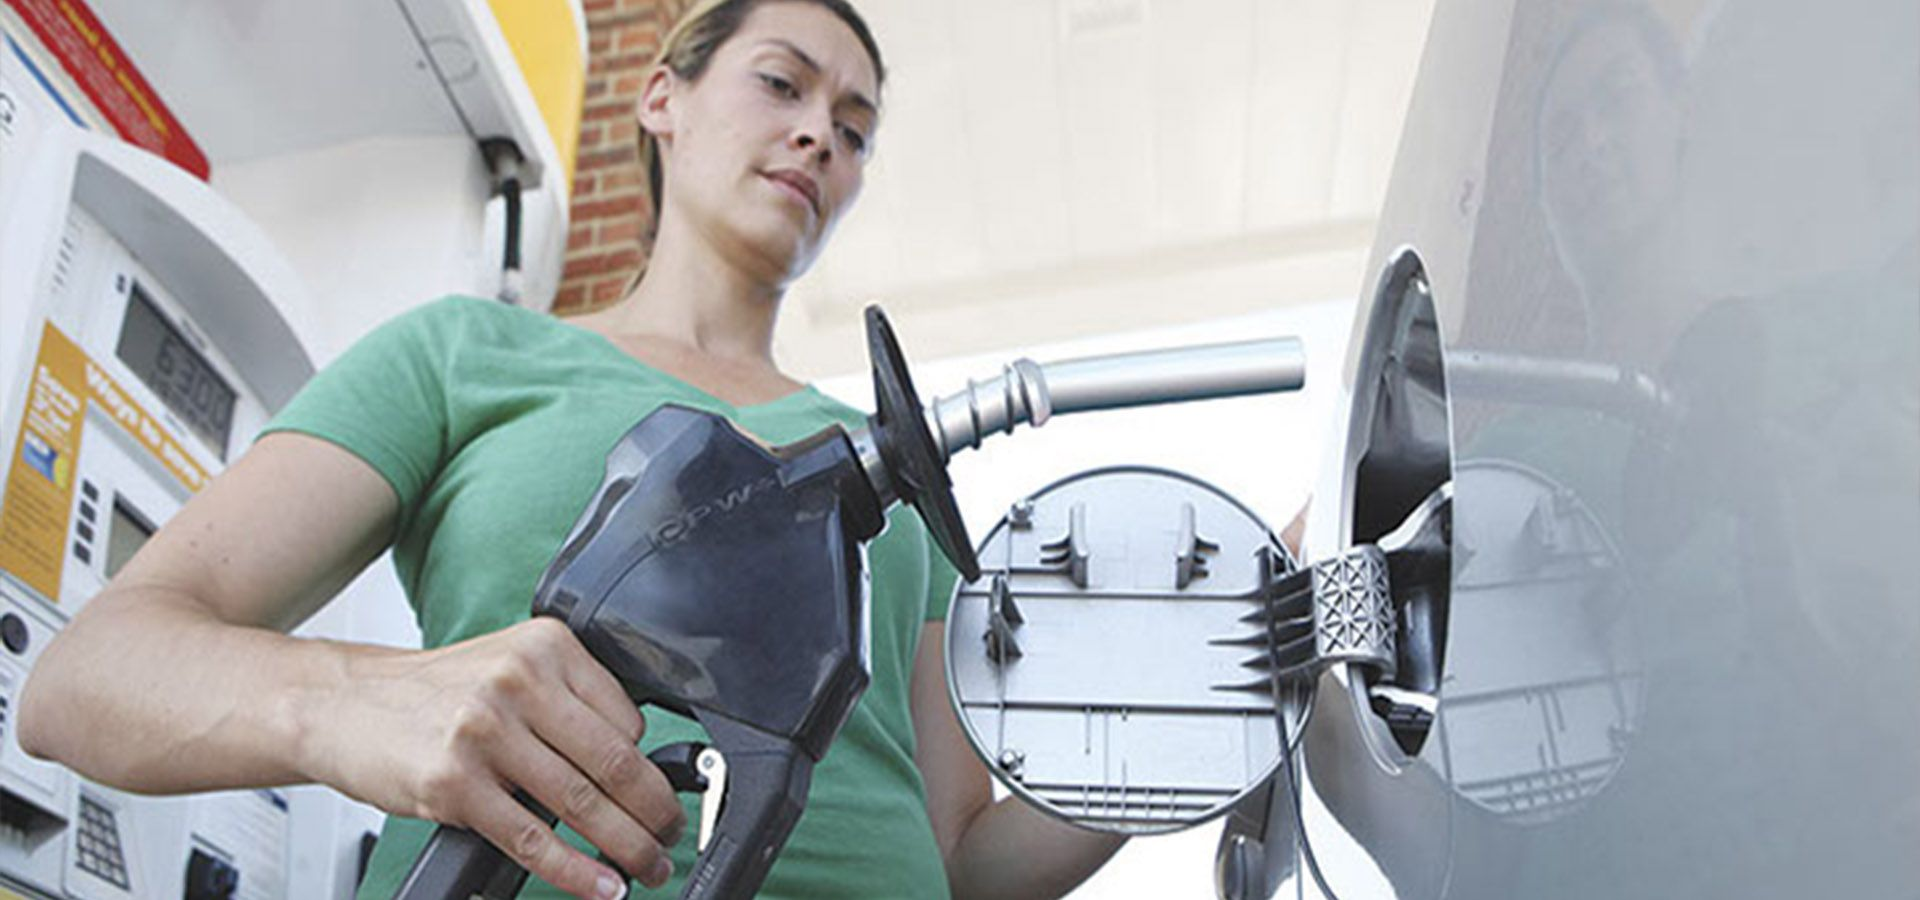 Three questions to ask before buying your next fuel nozzle